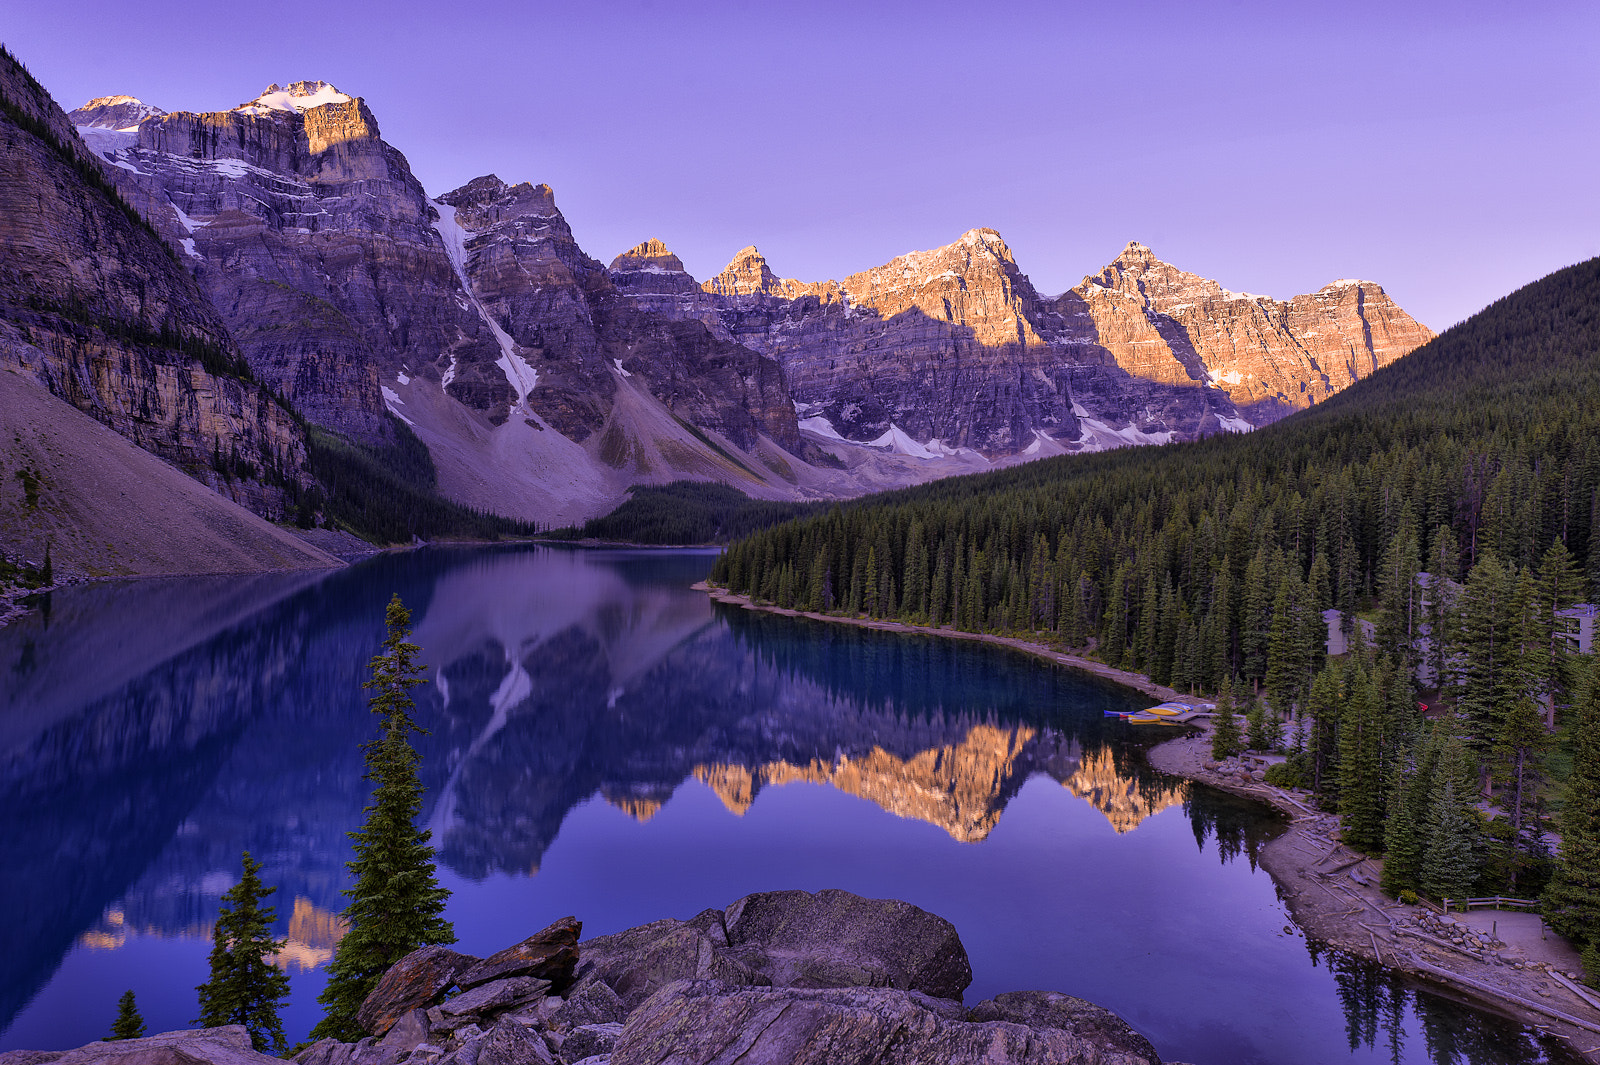 Photograph Moraine Lake by Wil Bloodworth on 500px